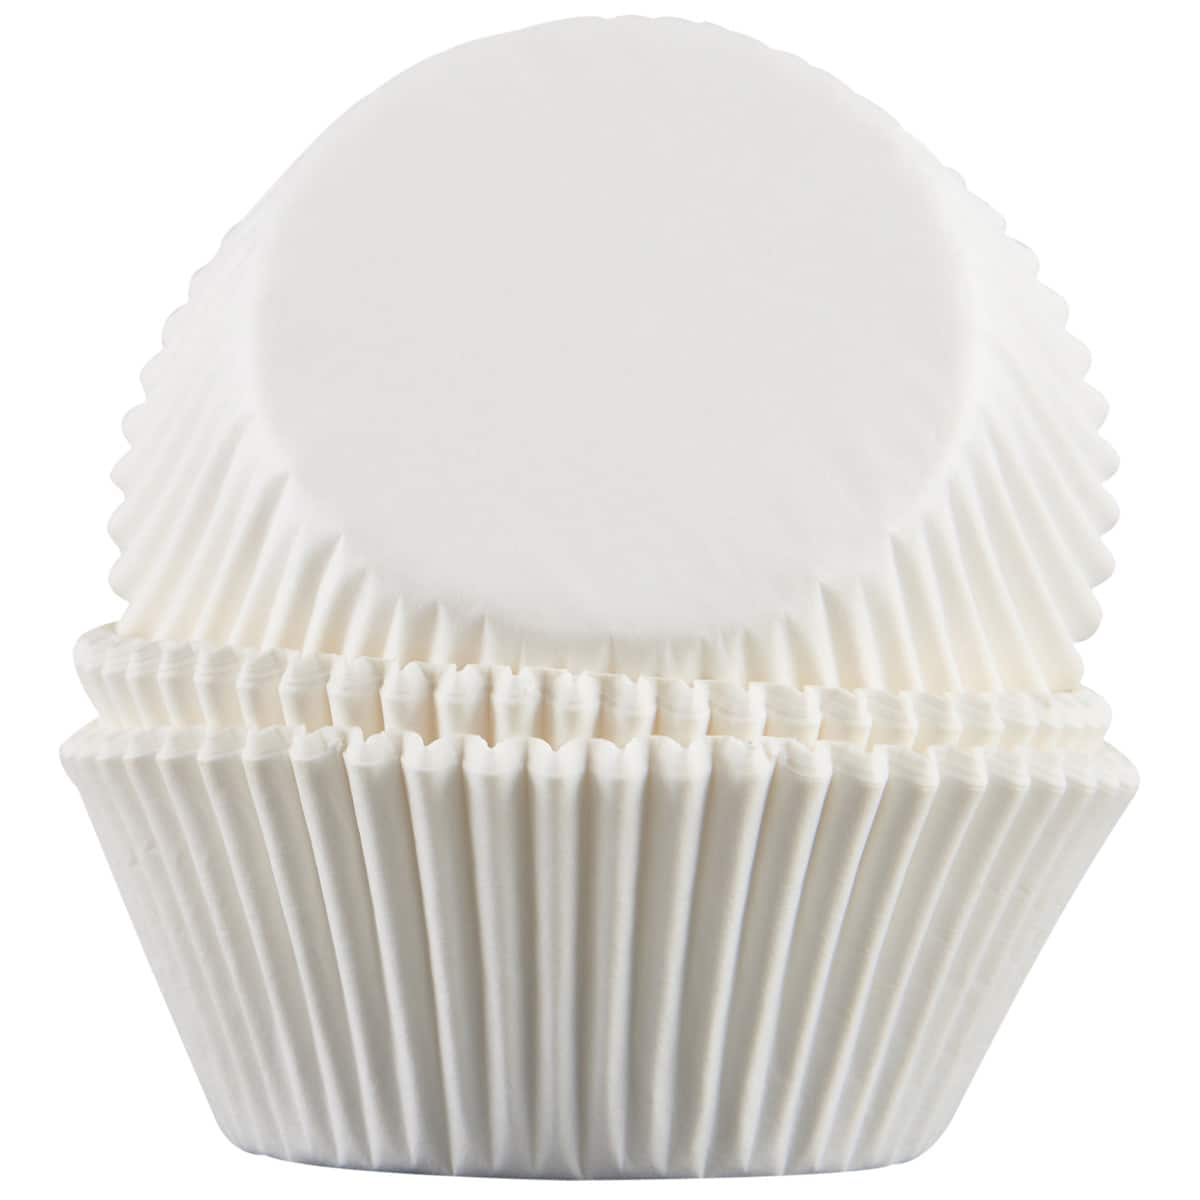 Style; 75 Wilton Jewel Cupcake Liners Baking Cups Birthday Party Bakery Supply 75 Fashionable In